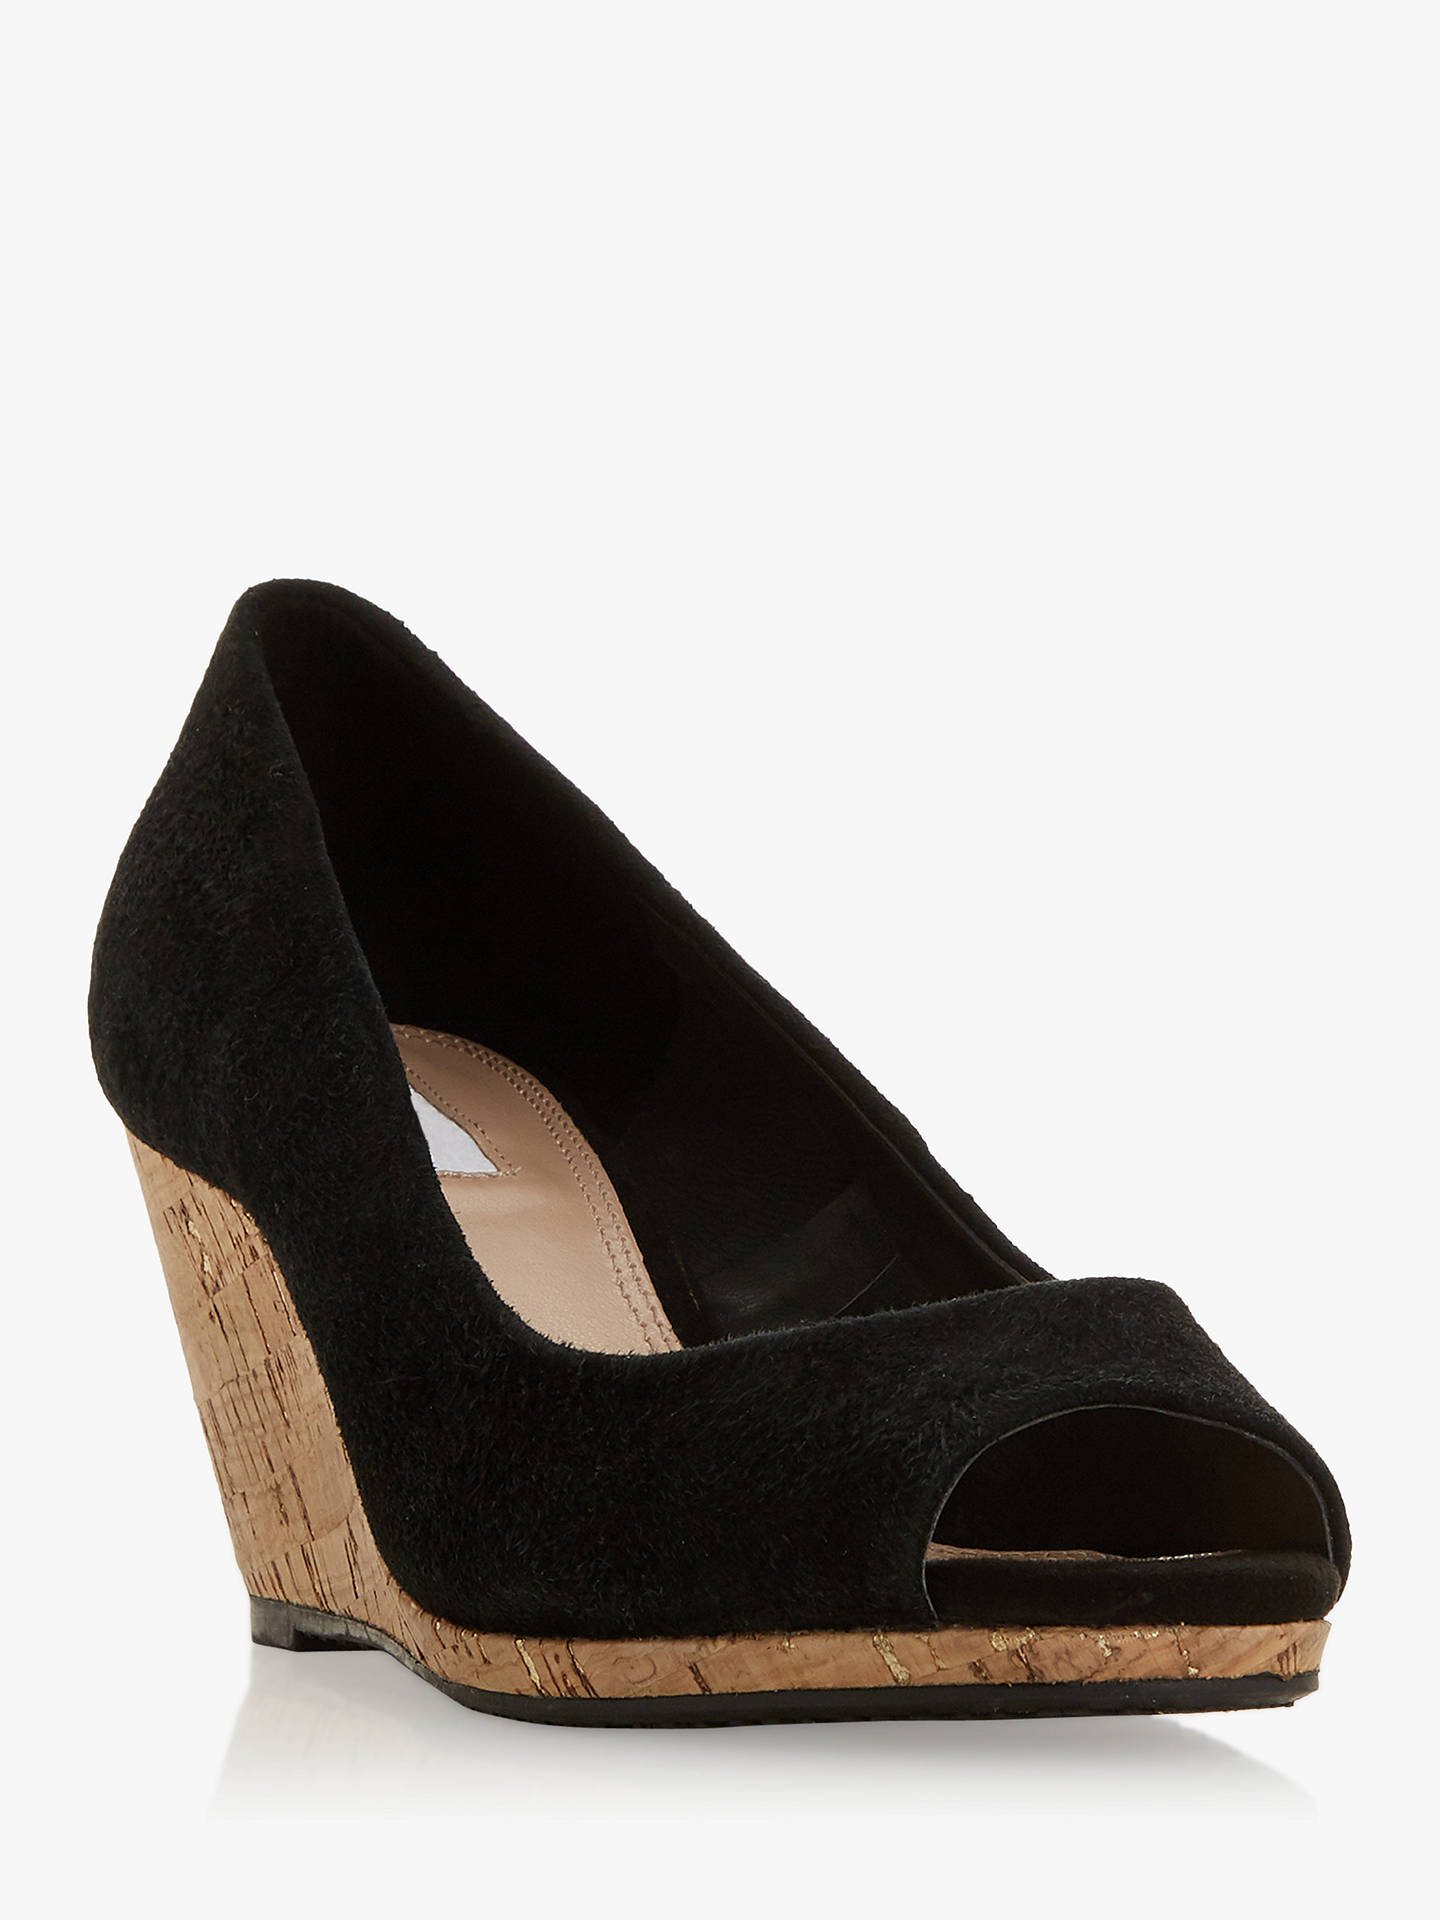 Buy Dune Caydence Peep Toe Cork Wedge Court Shoes, Black Suede, 3 Online at johnlewis.com